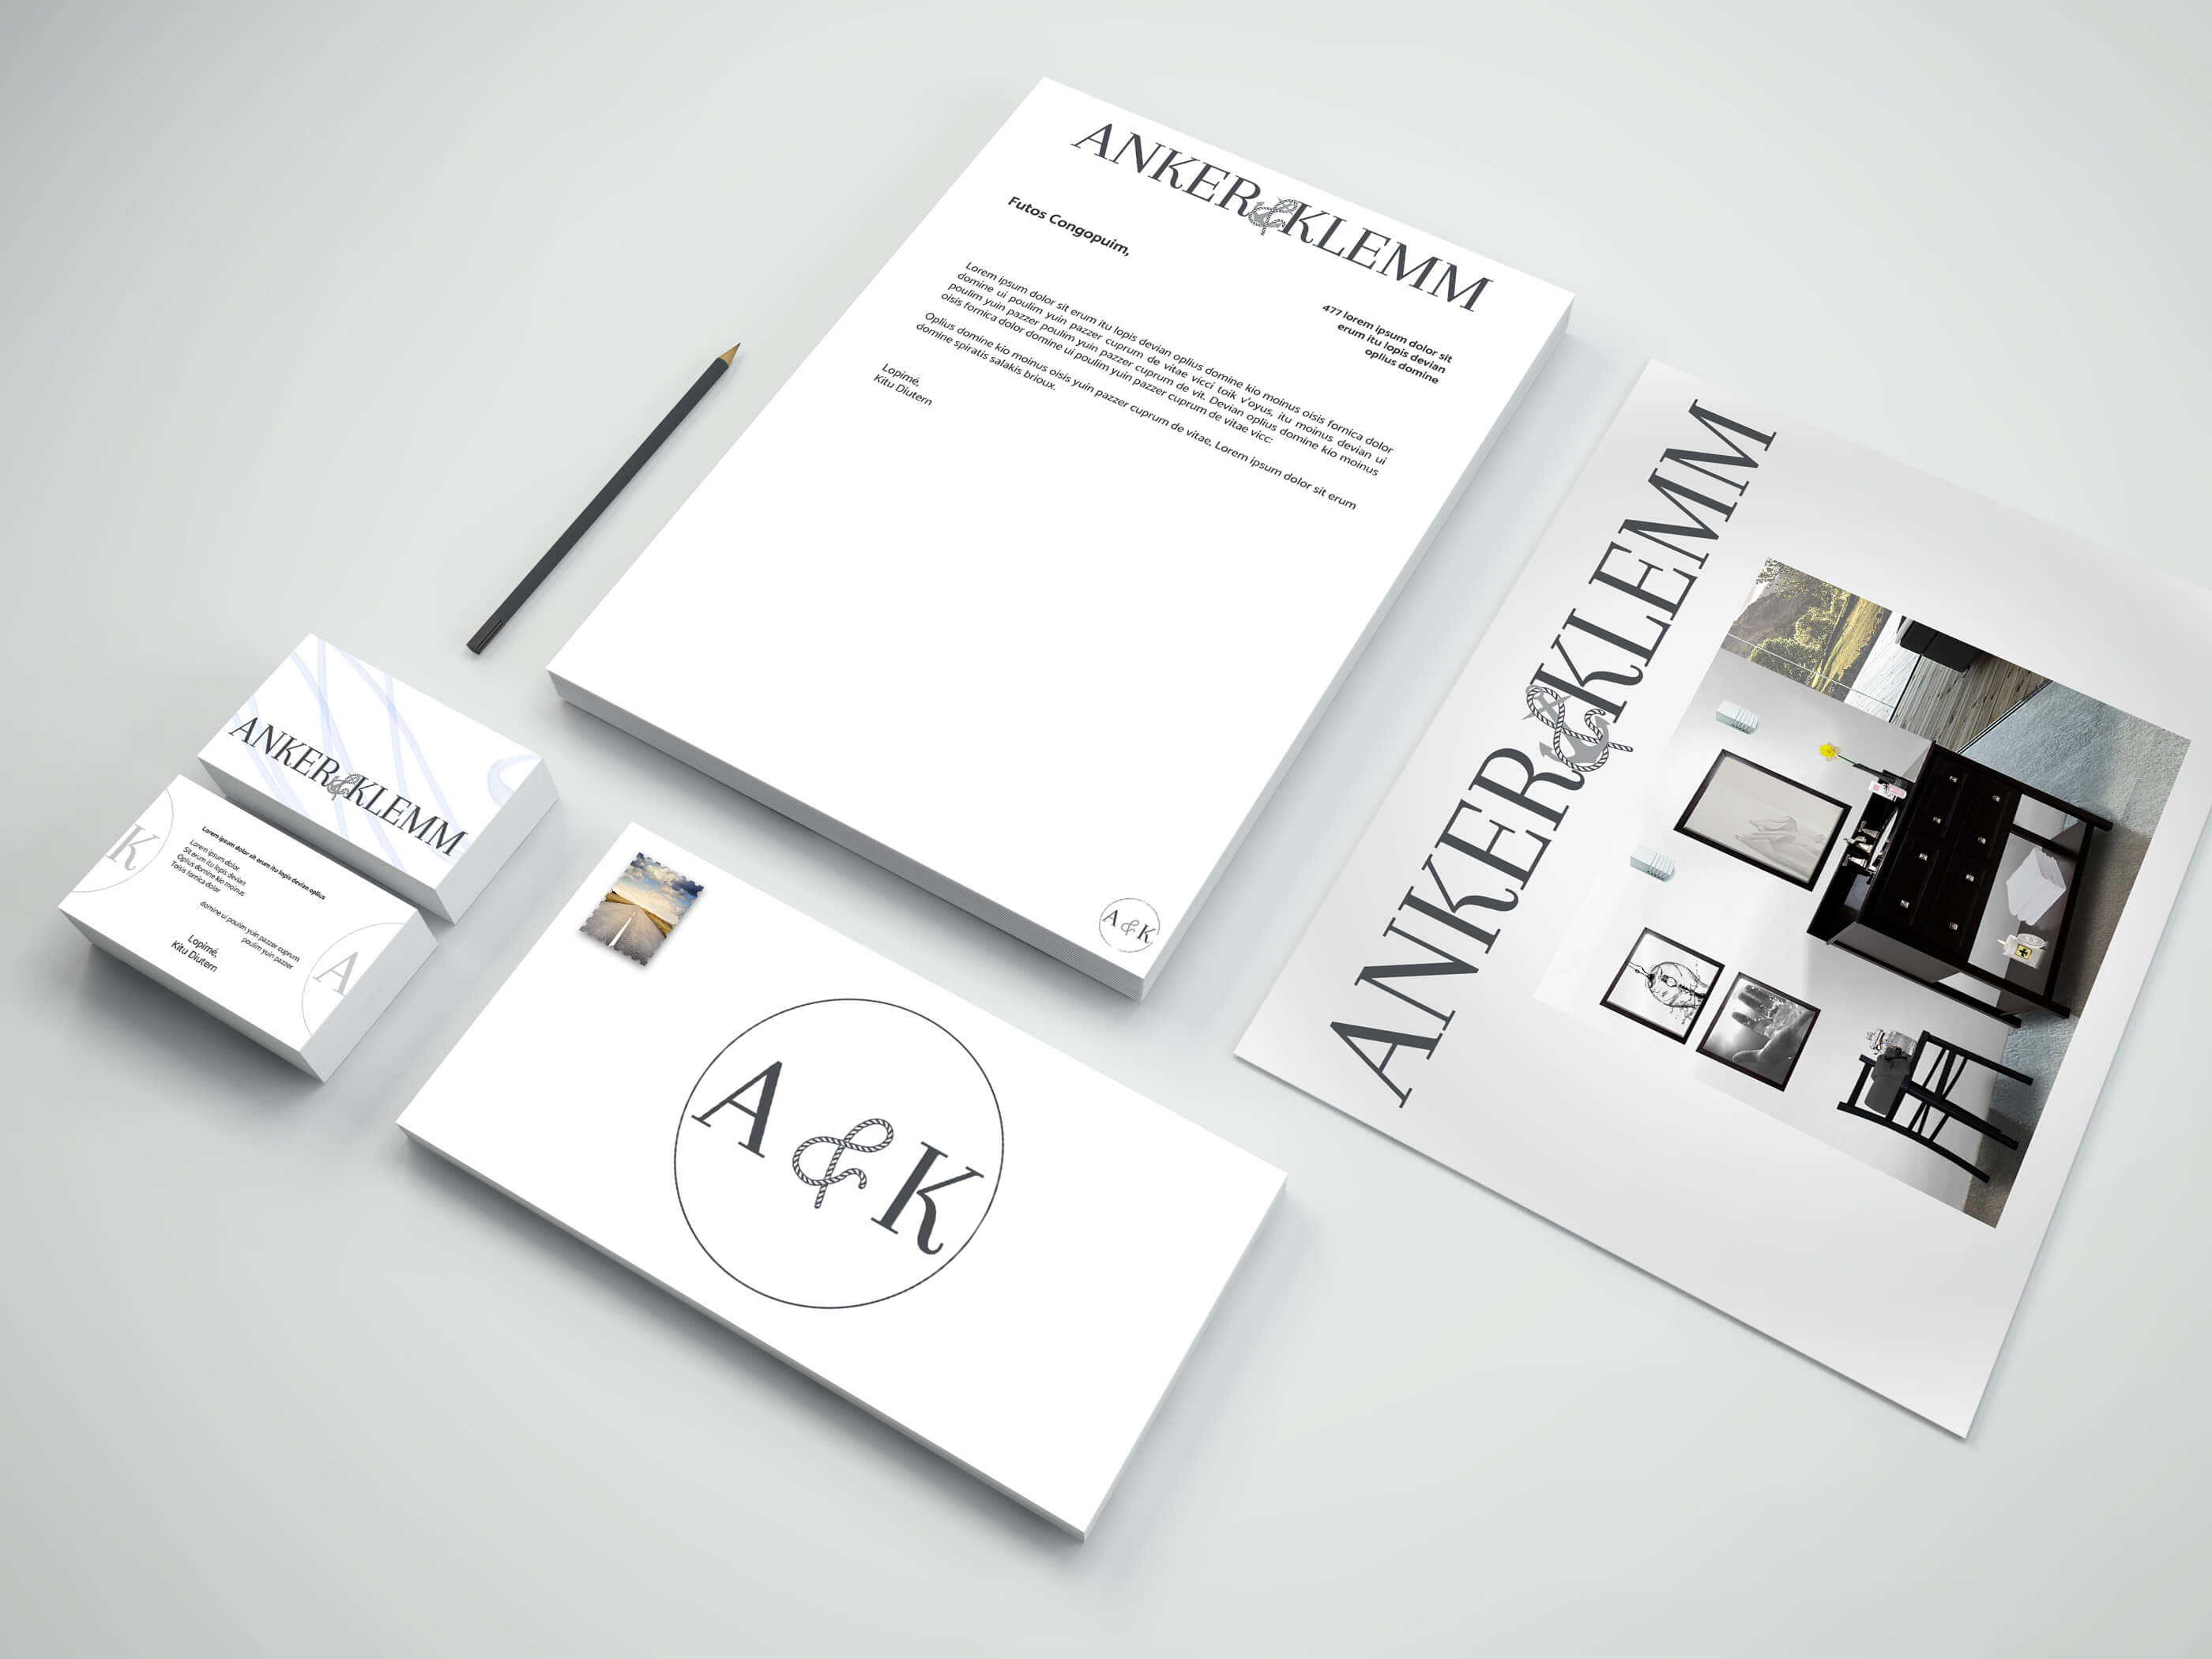 ANCHOR Design of Brand Identity Mockup v1